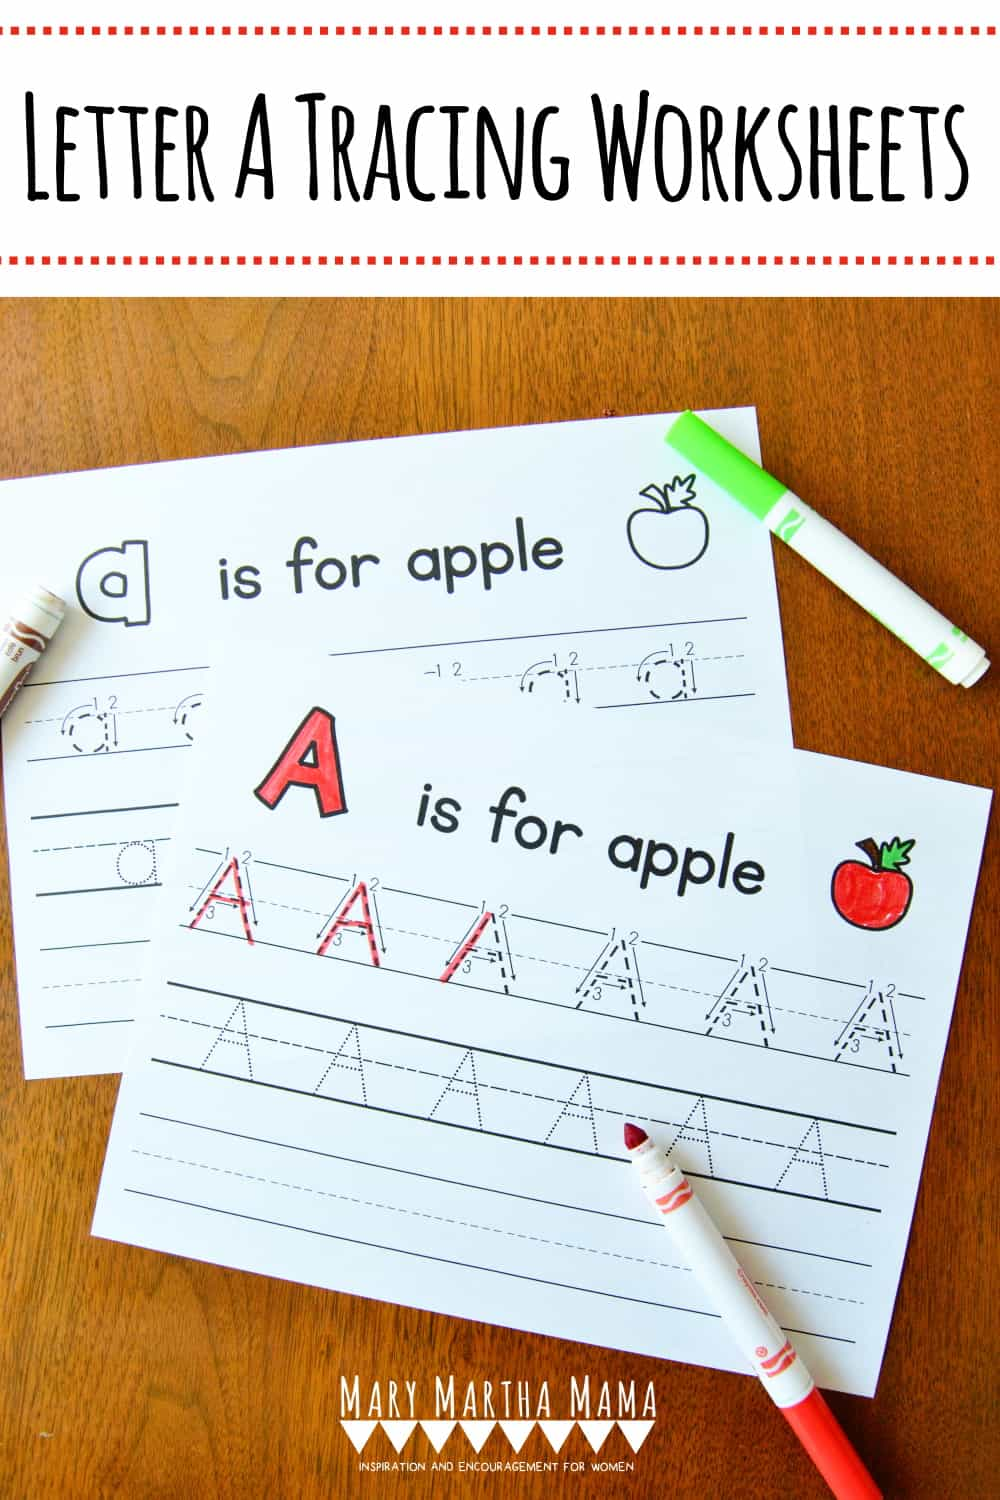 Does your child need practice with writing his or her letters? Check out these free printable Letter A Tracing Worksheets.